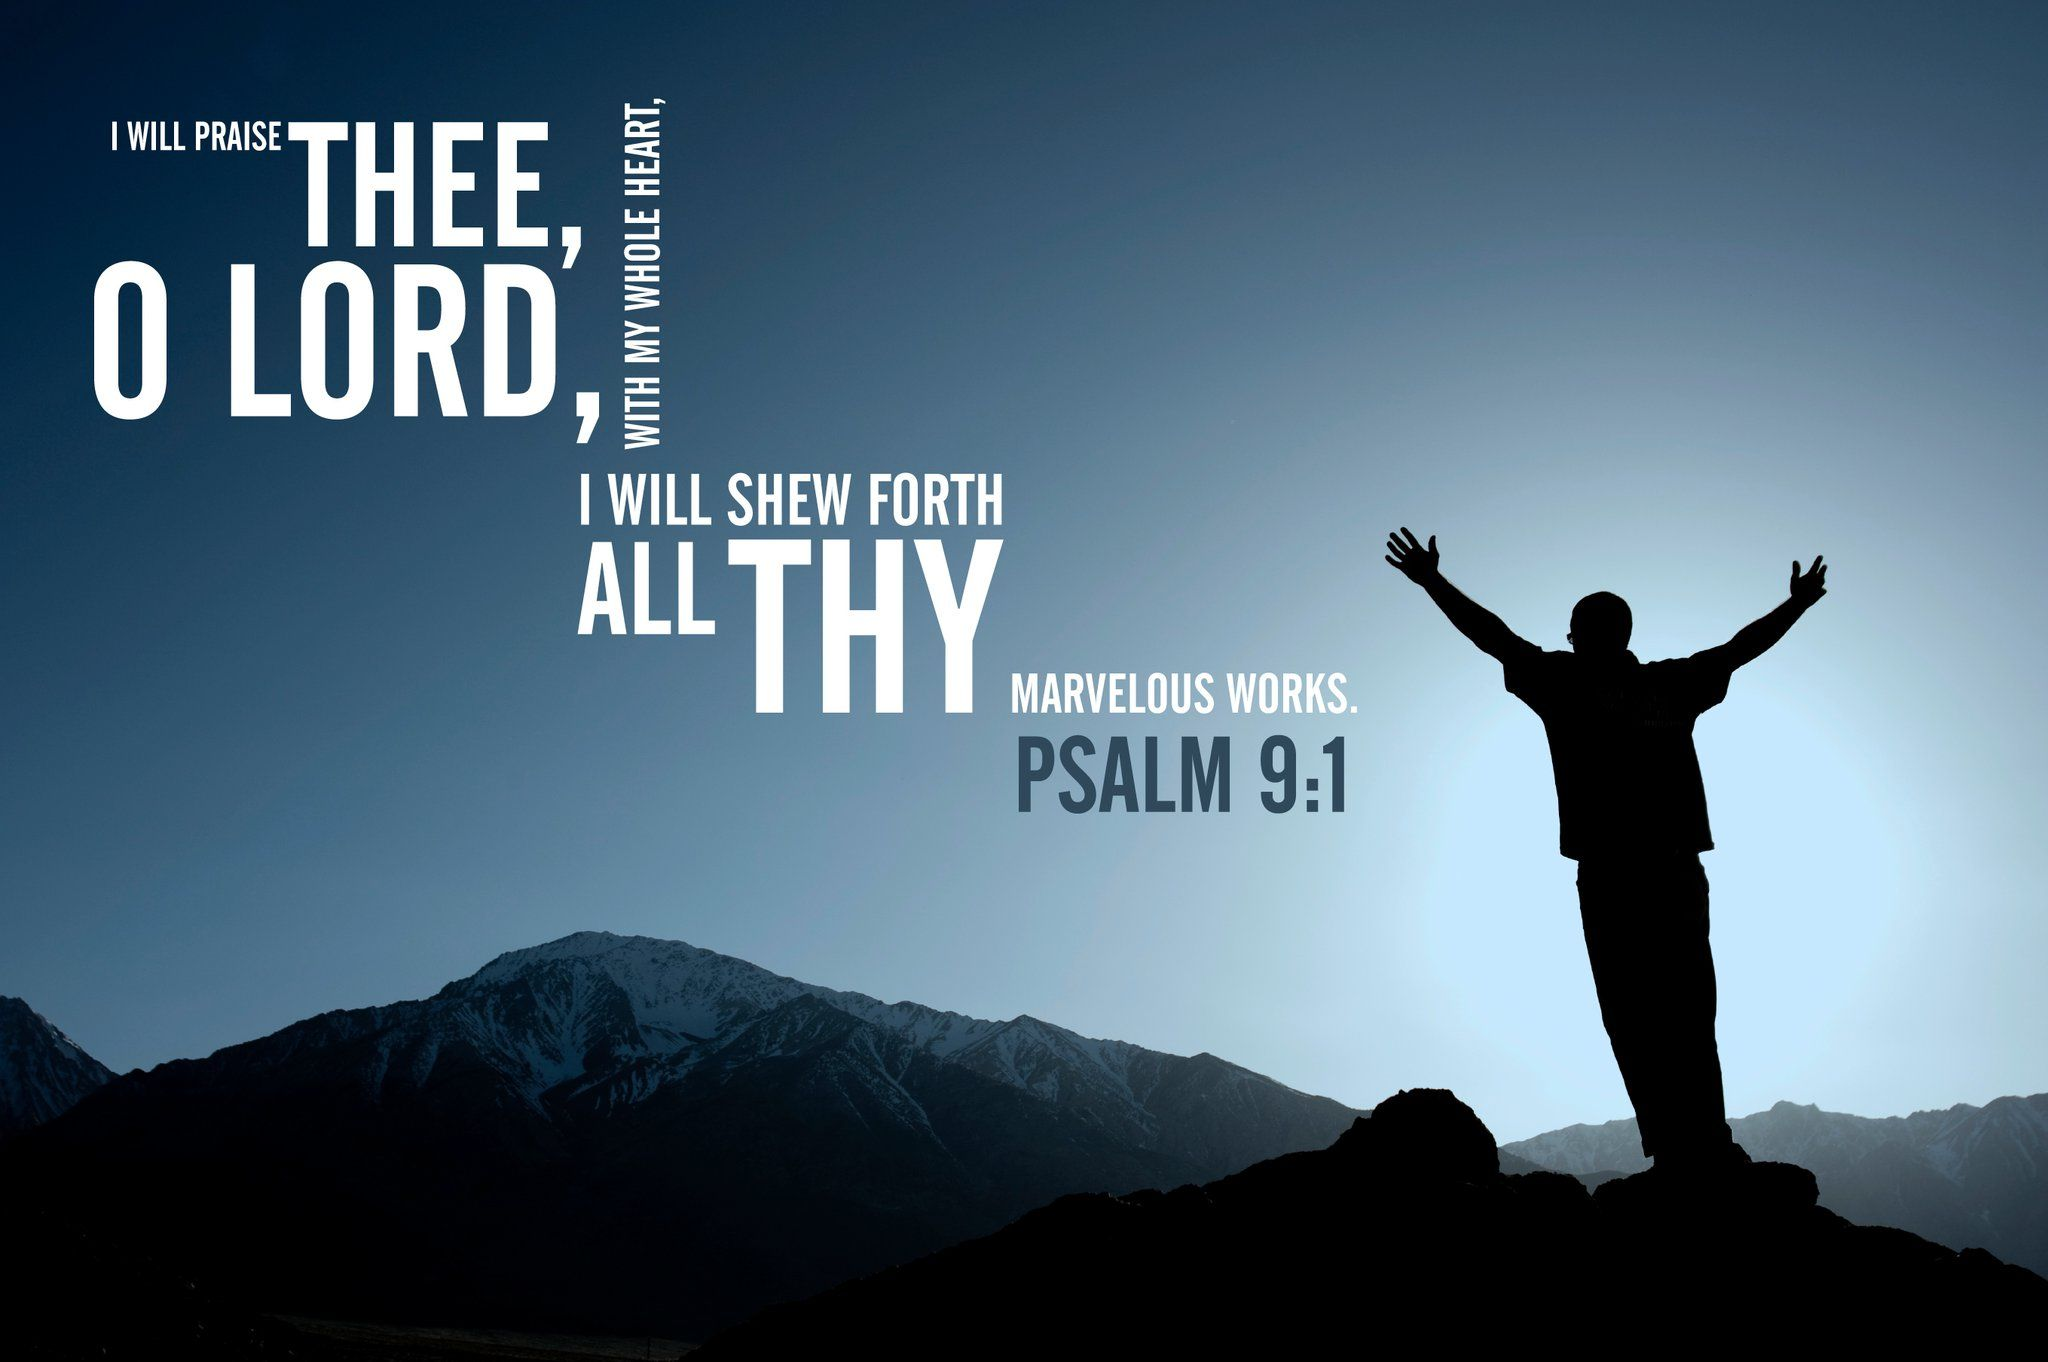 Christian Wallpaper With Scripture